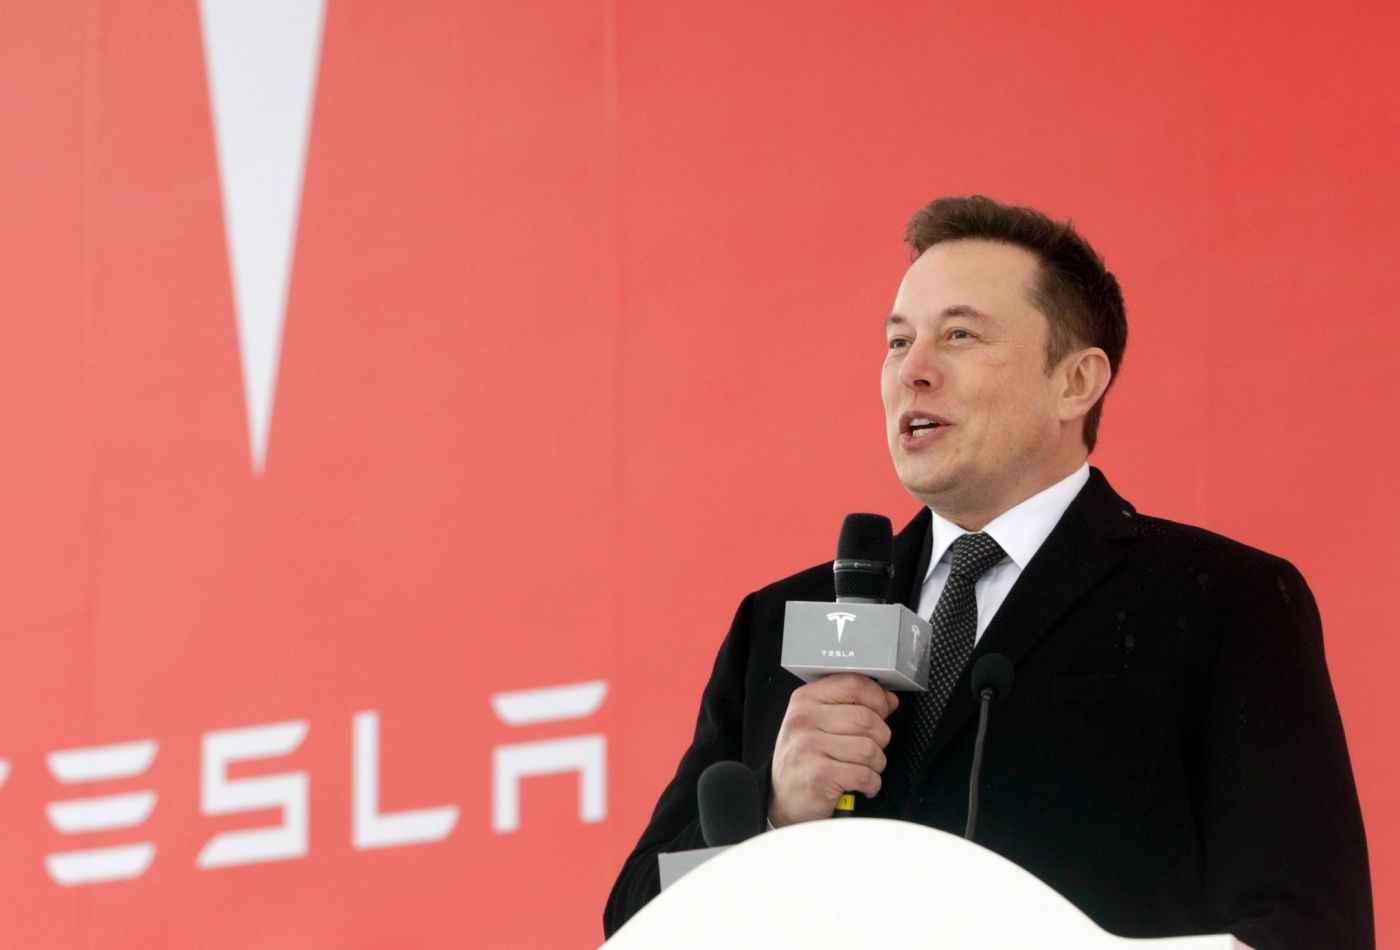 Elon Musk told this Reddit user they 'should interview at